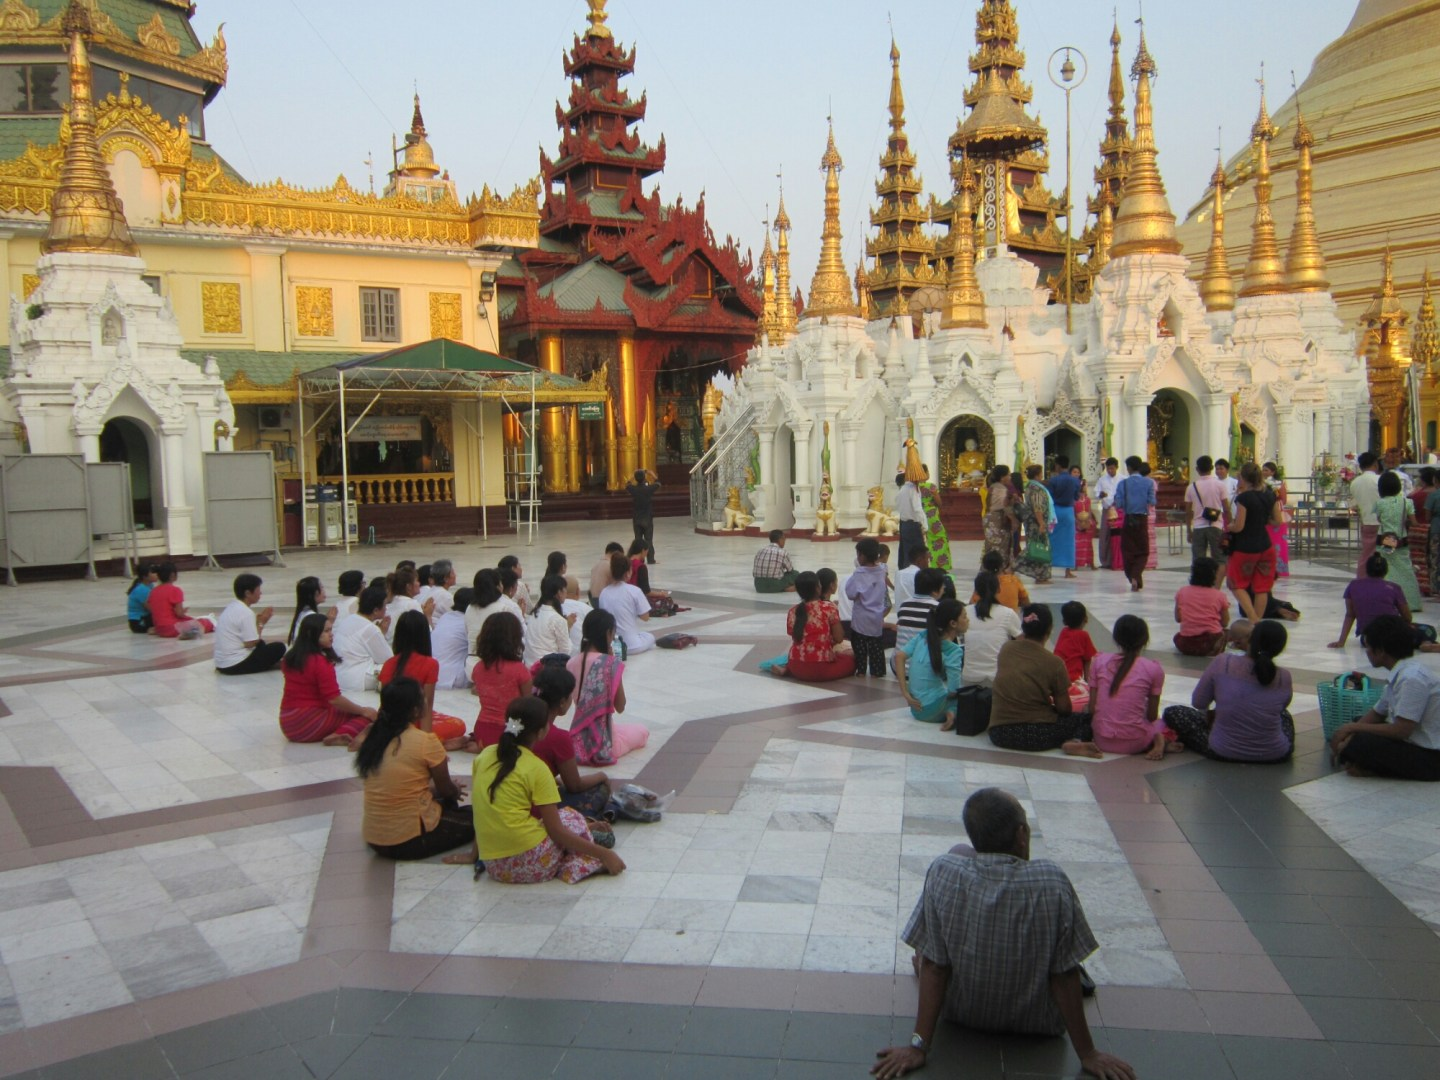 Visiting Buddhist temples and respecting Buddhist beliefs in Southeast Asia